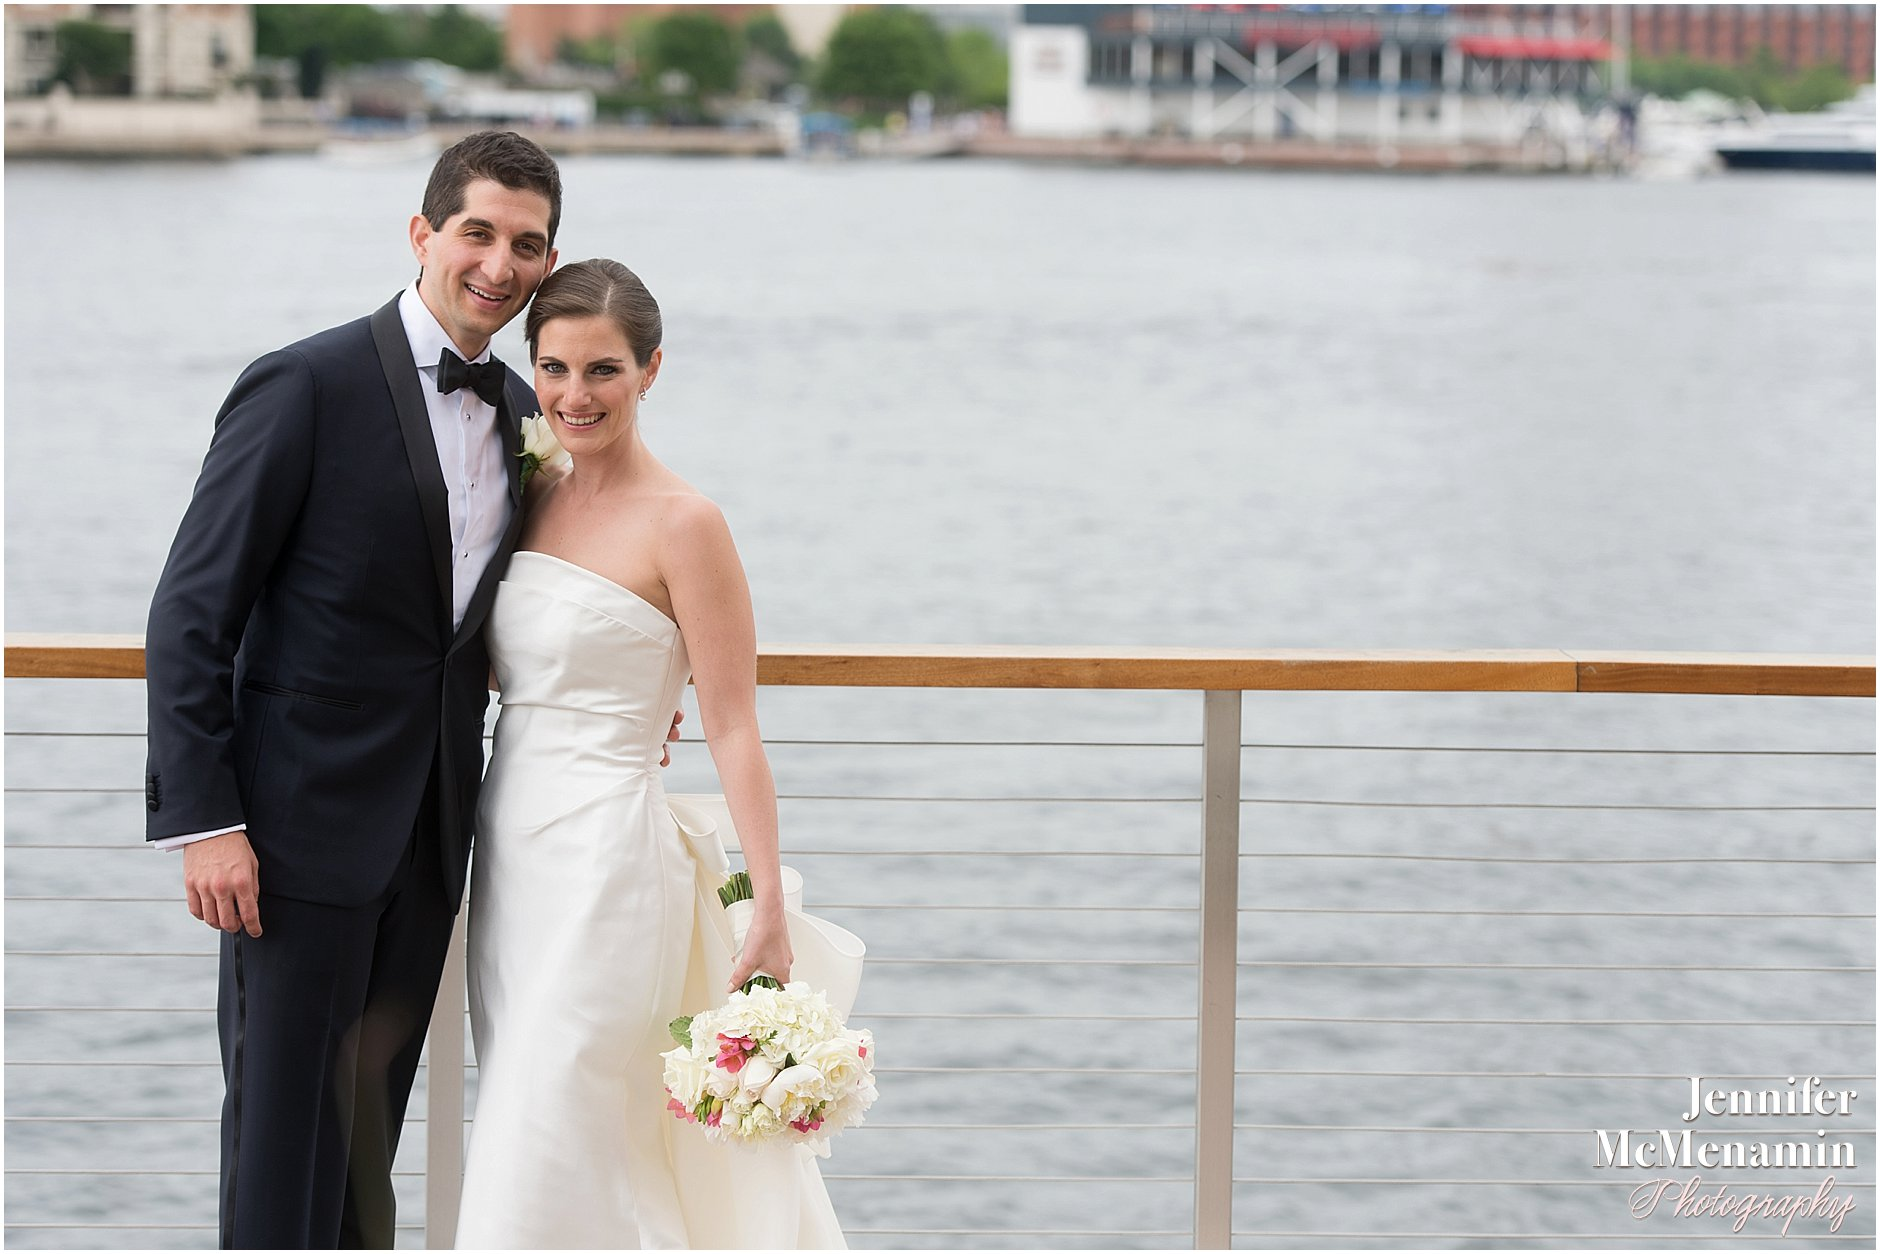 012-Jennifer-McMenamin-Photography-Baltimore-Waterfront-Marriott-wedding_0007